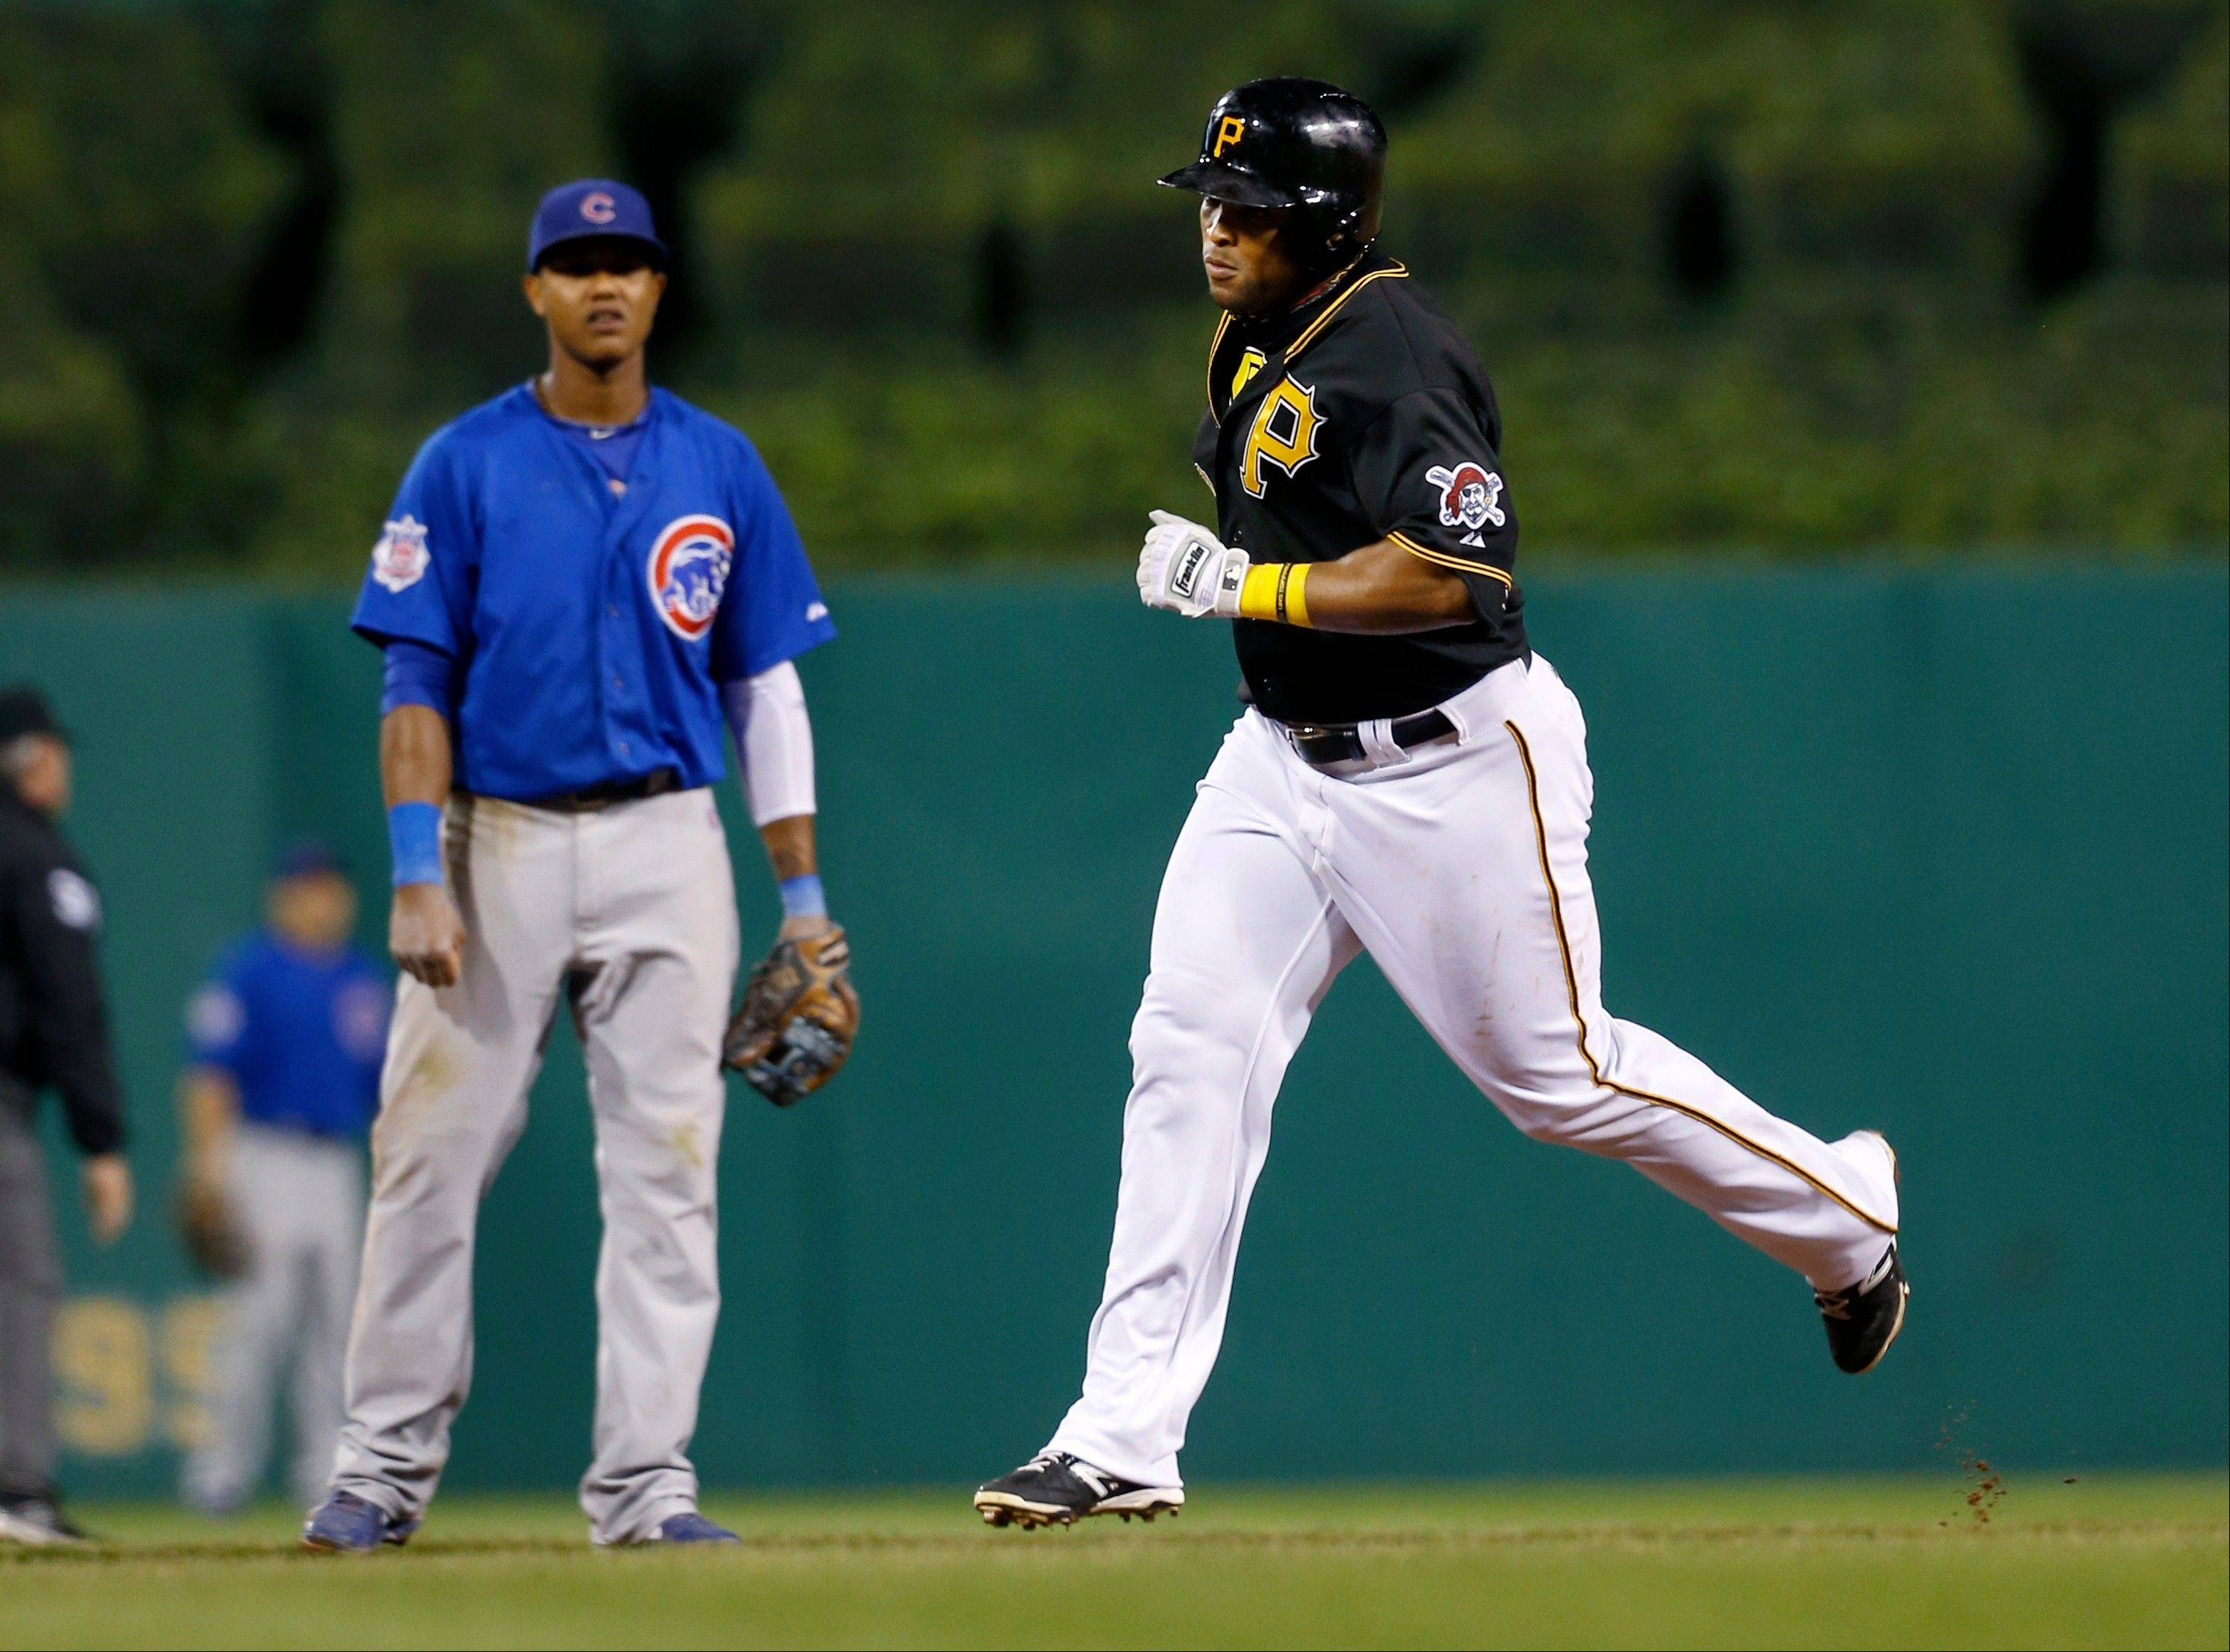 Pittsburgh Pirates' Marlon Byrd, right, rounds the bases in front of Chicago Cubs' Darwin Barney after hitting a home run in the seventh inning of the baseball game on Saturday, Sept. 14, 2013, in Pittsburgh. The Pirates won 2-1.